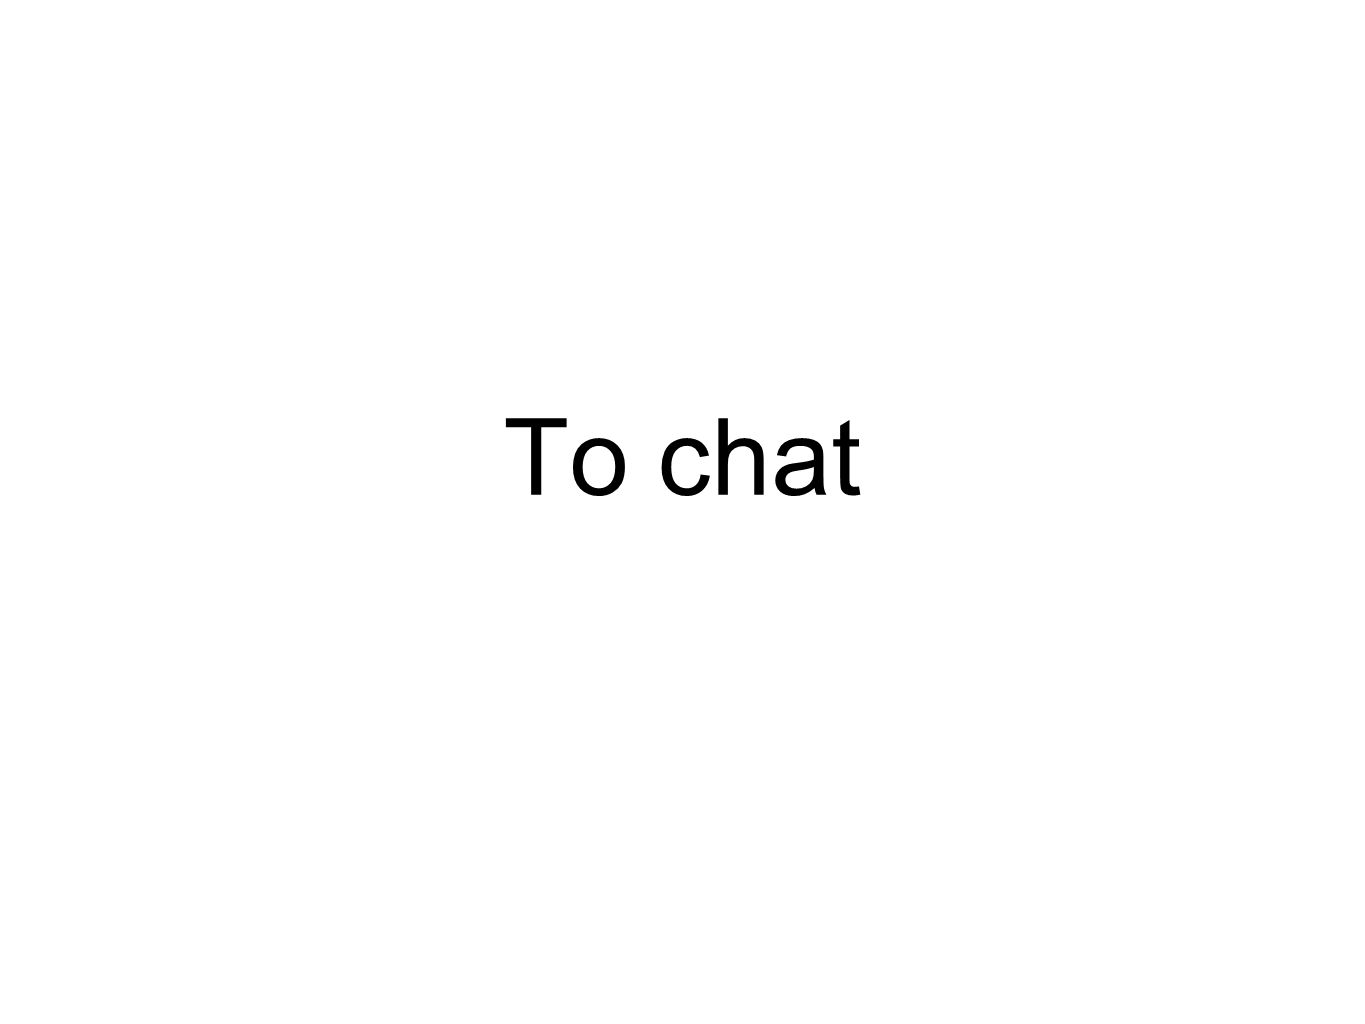 To chat